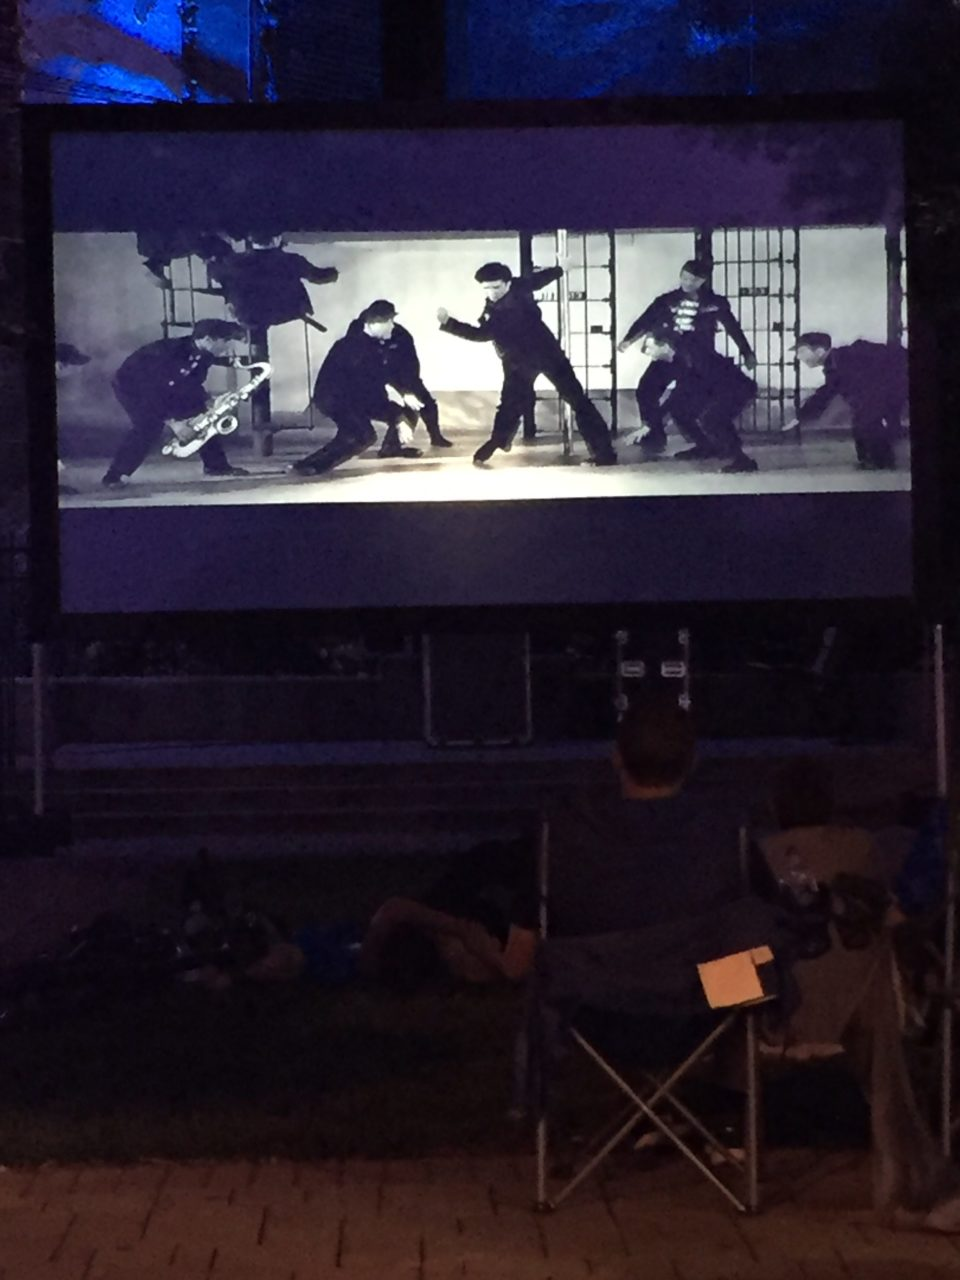 Jail House Rock playing at the Carolina Theatre Park during our event, Movies Under the Stars - 2017